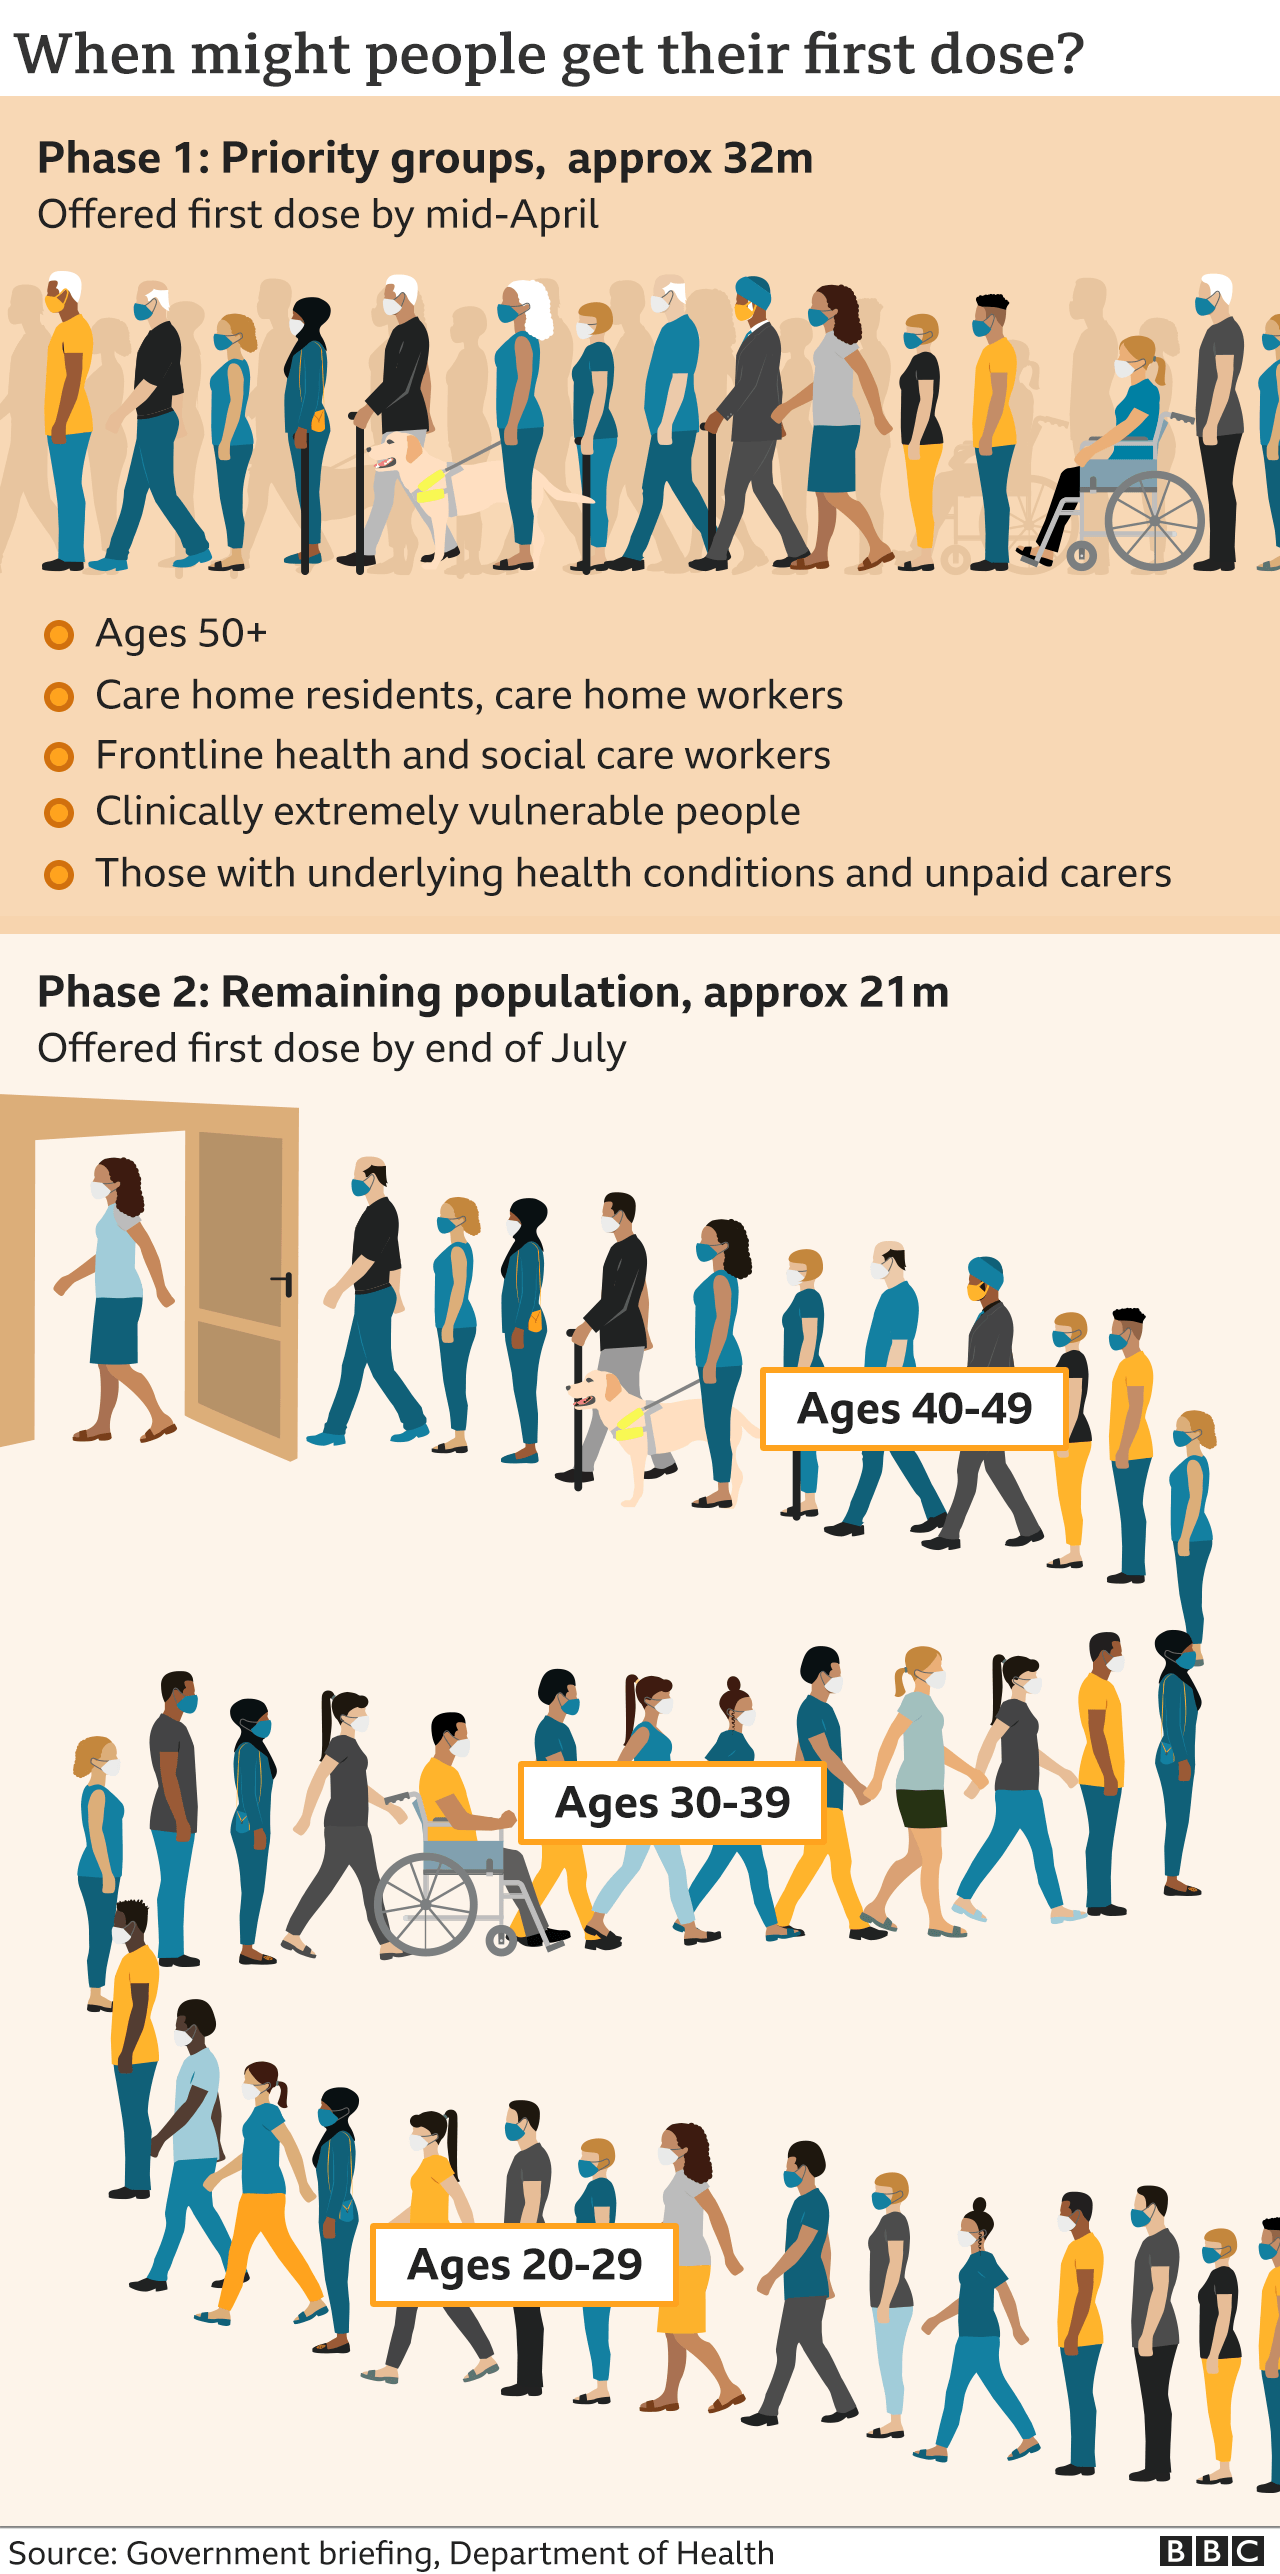 Infographic showing the priority group order for the vaccine rollout